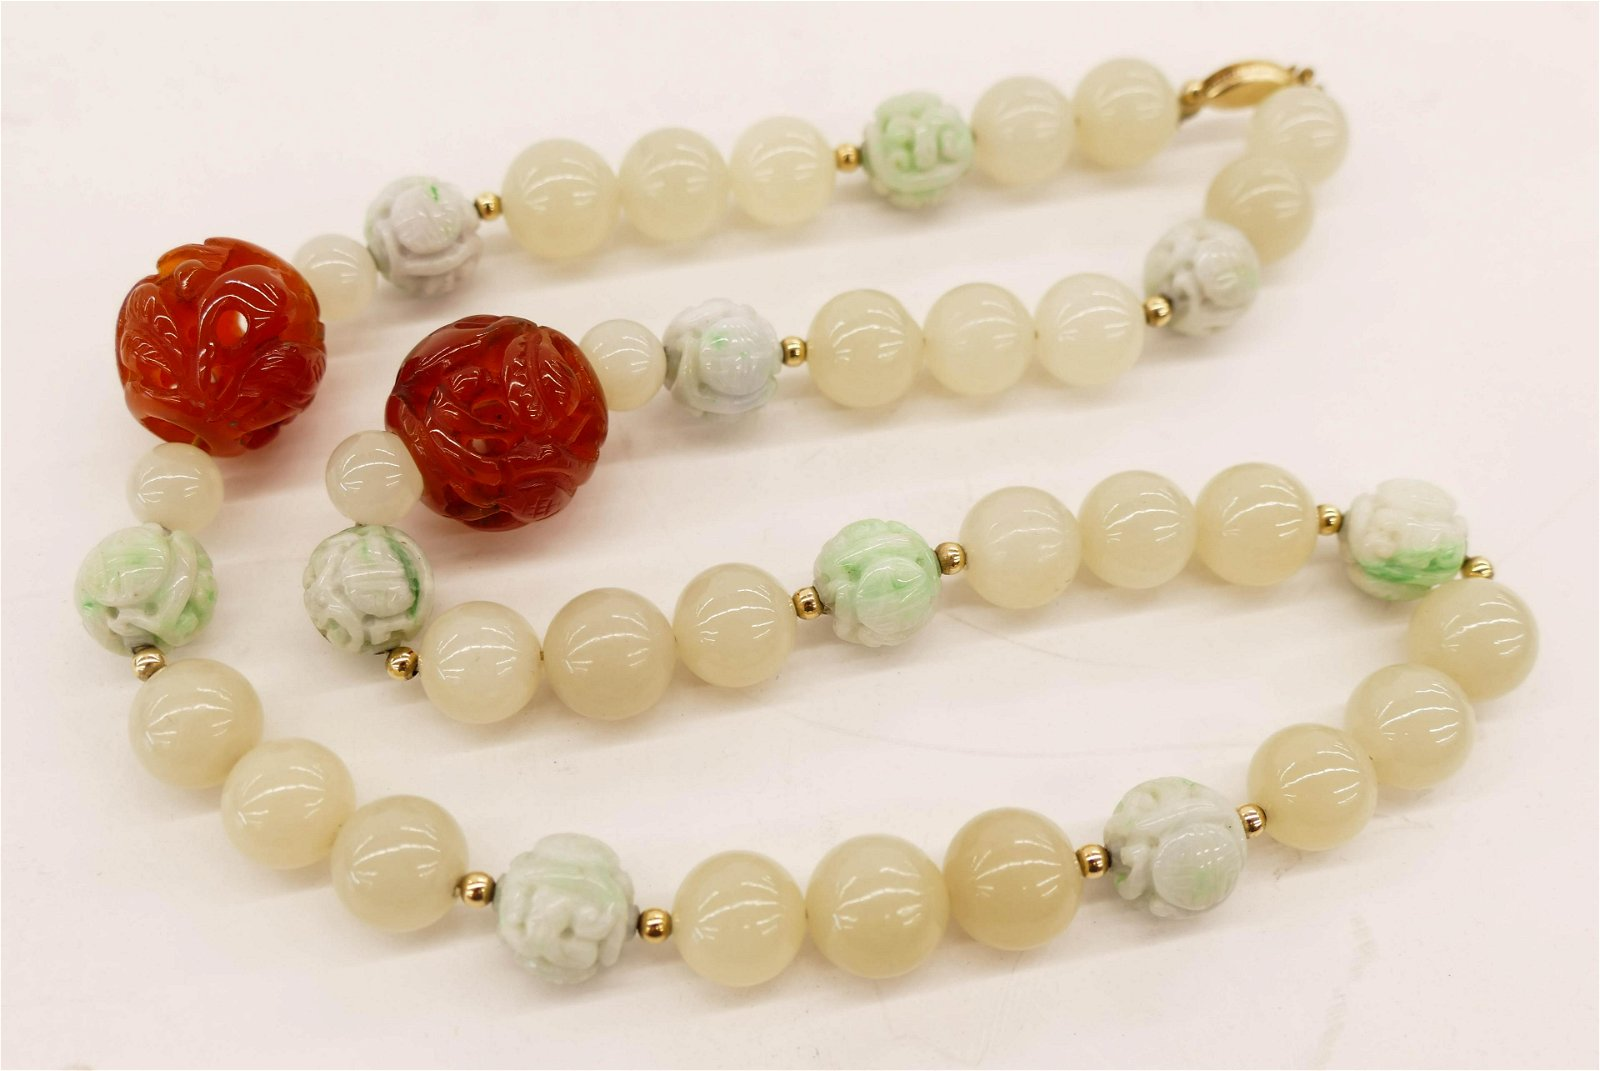 Chinese Jade and Carnelian Bead Necklace 20''. Includes